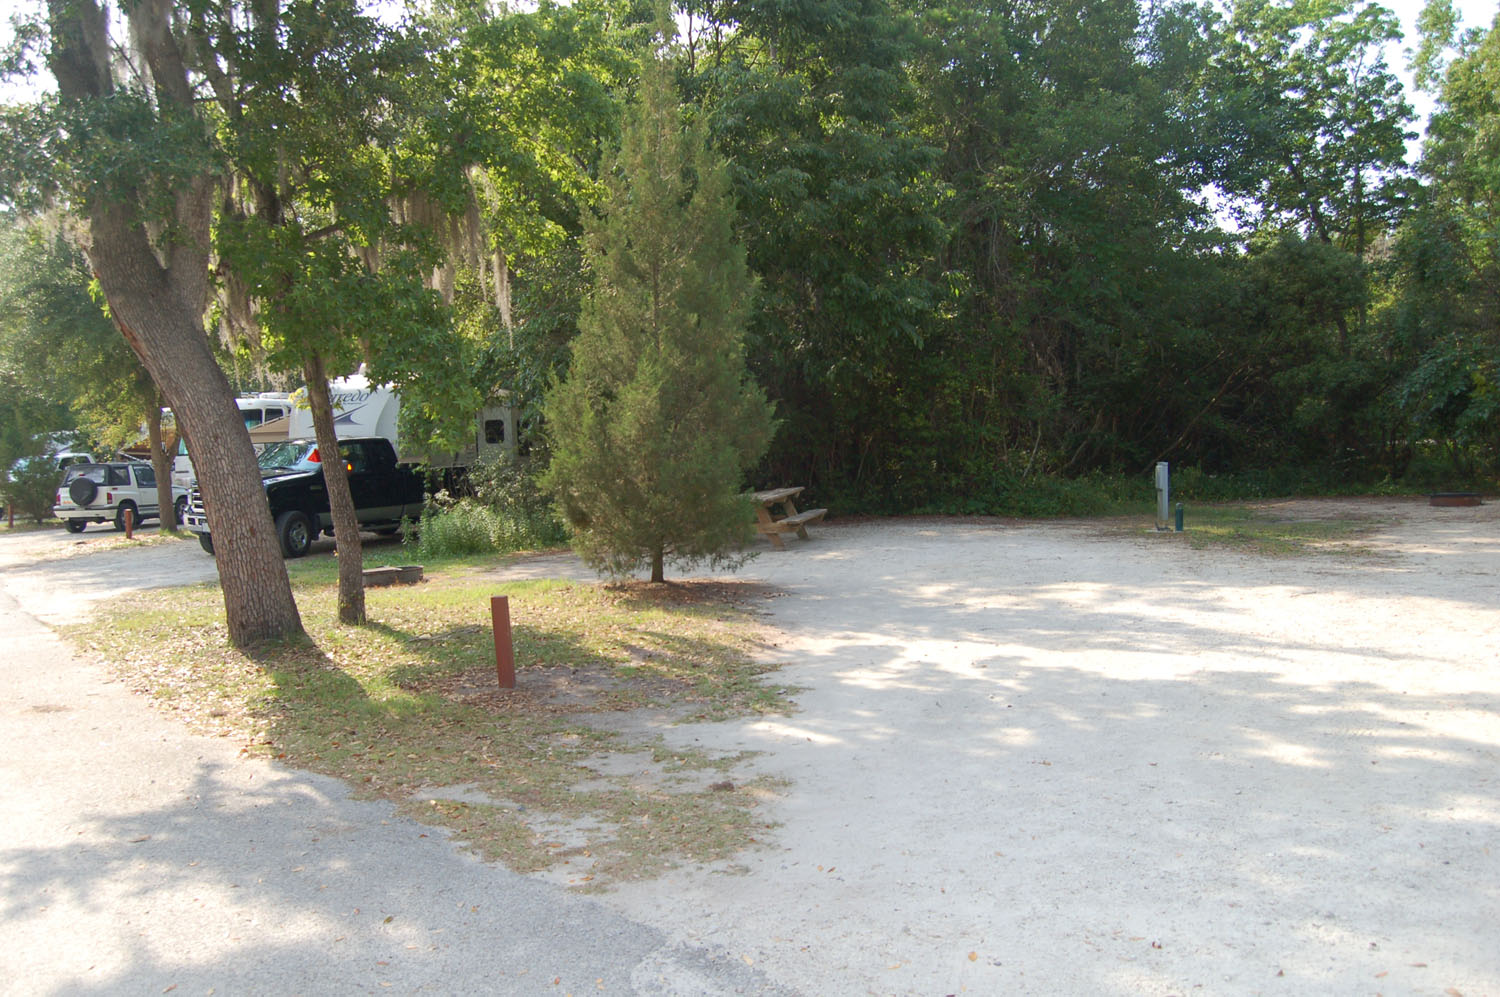 Image of campsite #18 at the Campground at James Island County Park